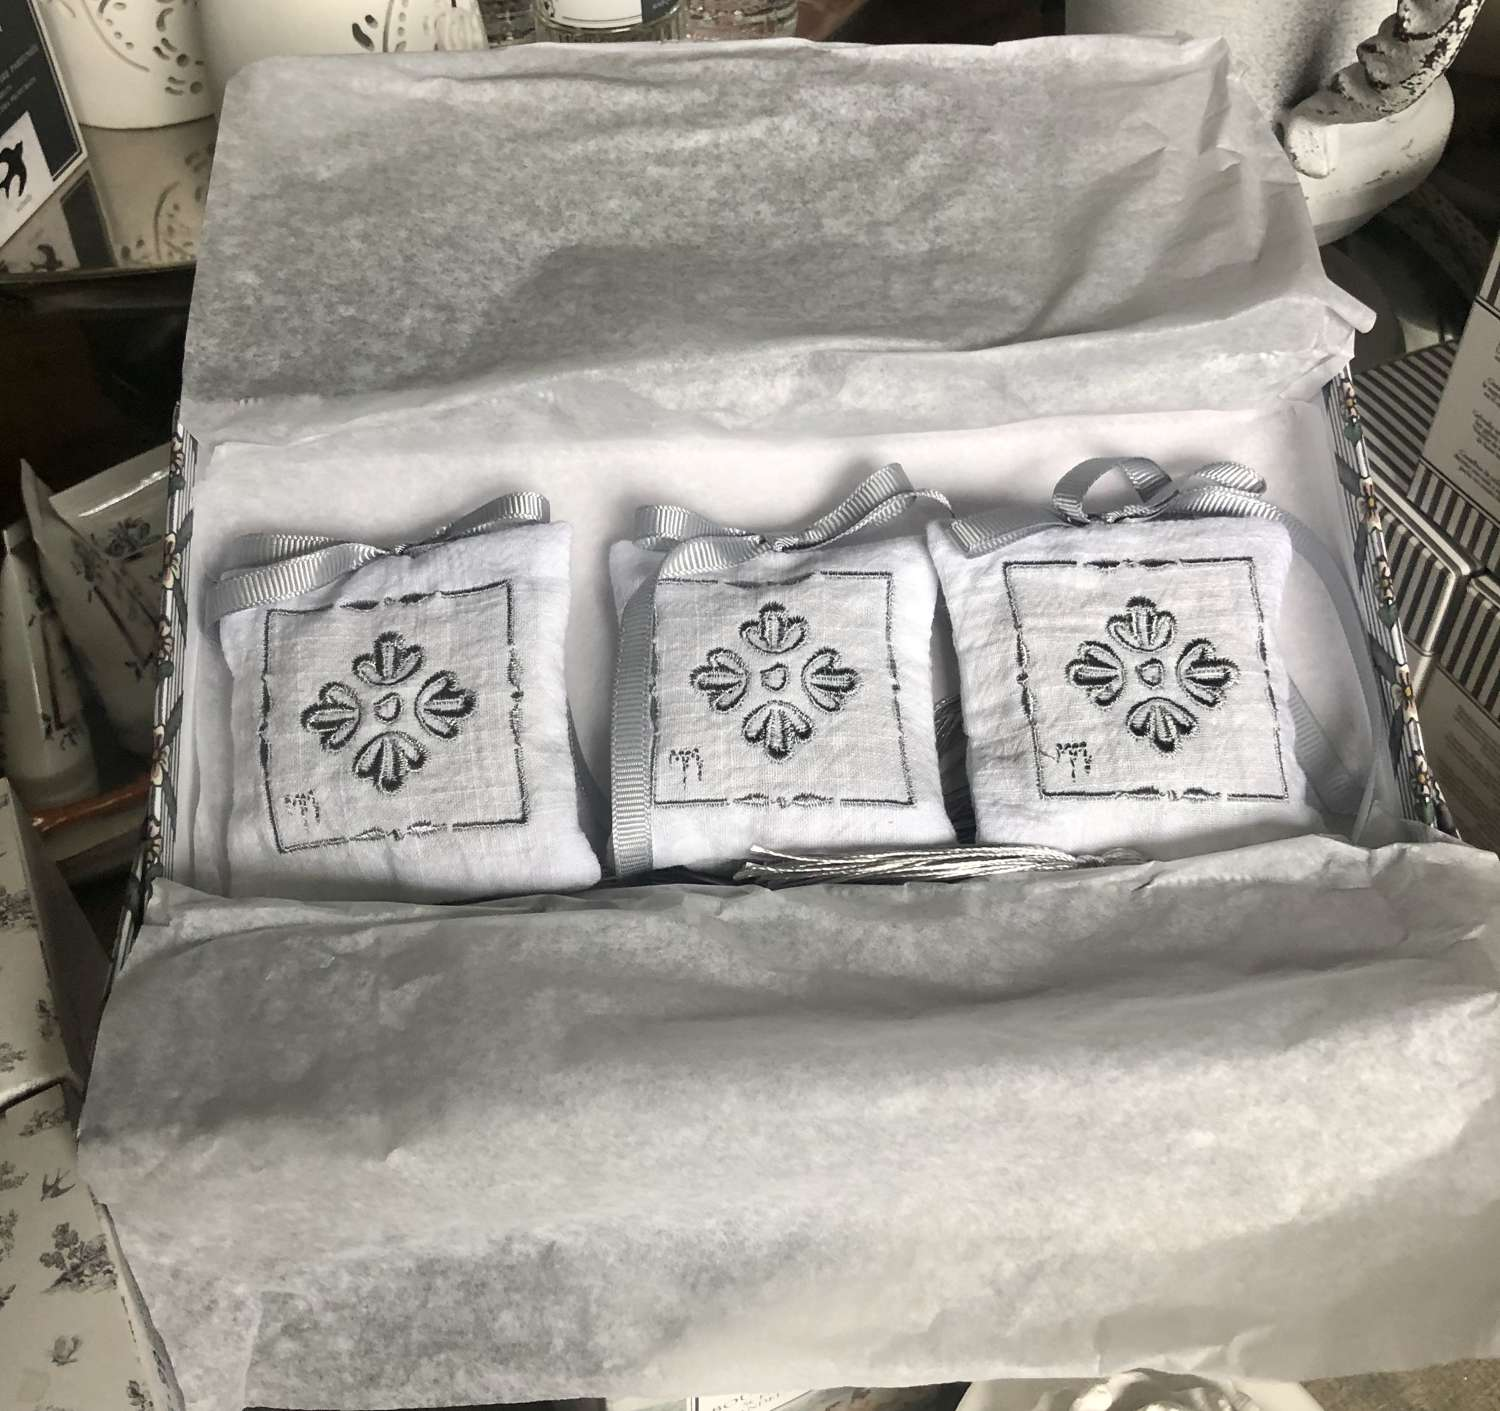 Mathilde M. France - Giftset of 3 Marquise Scented Cushions.